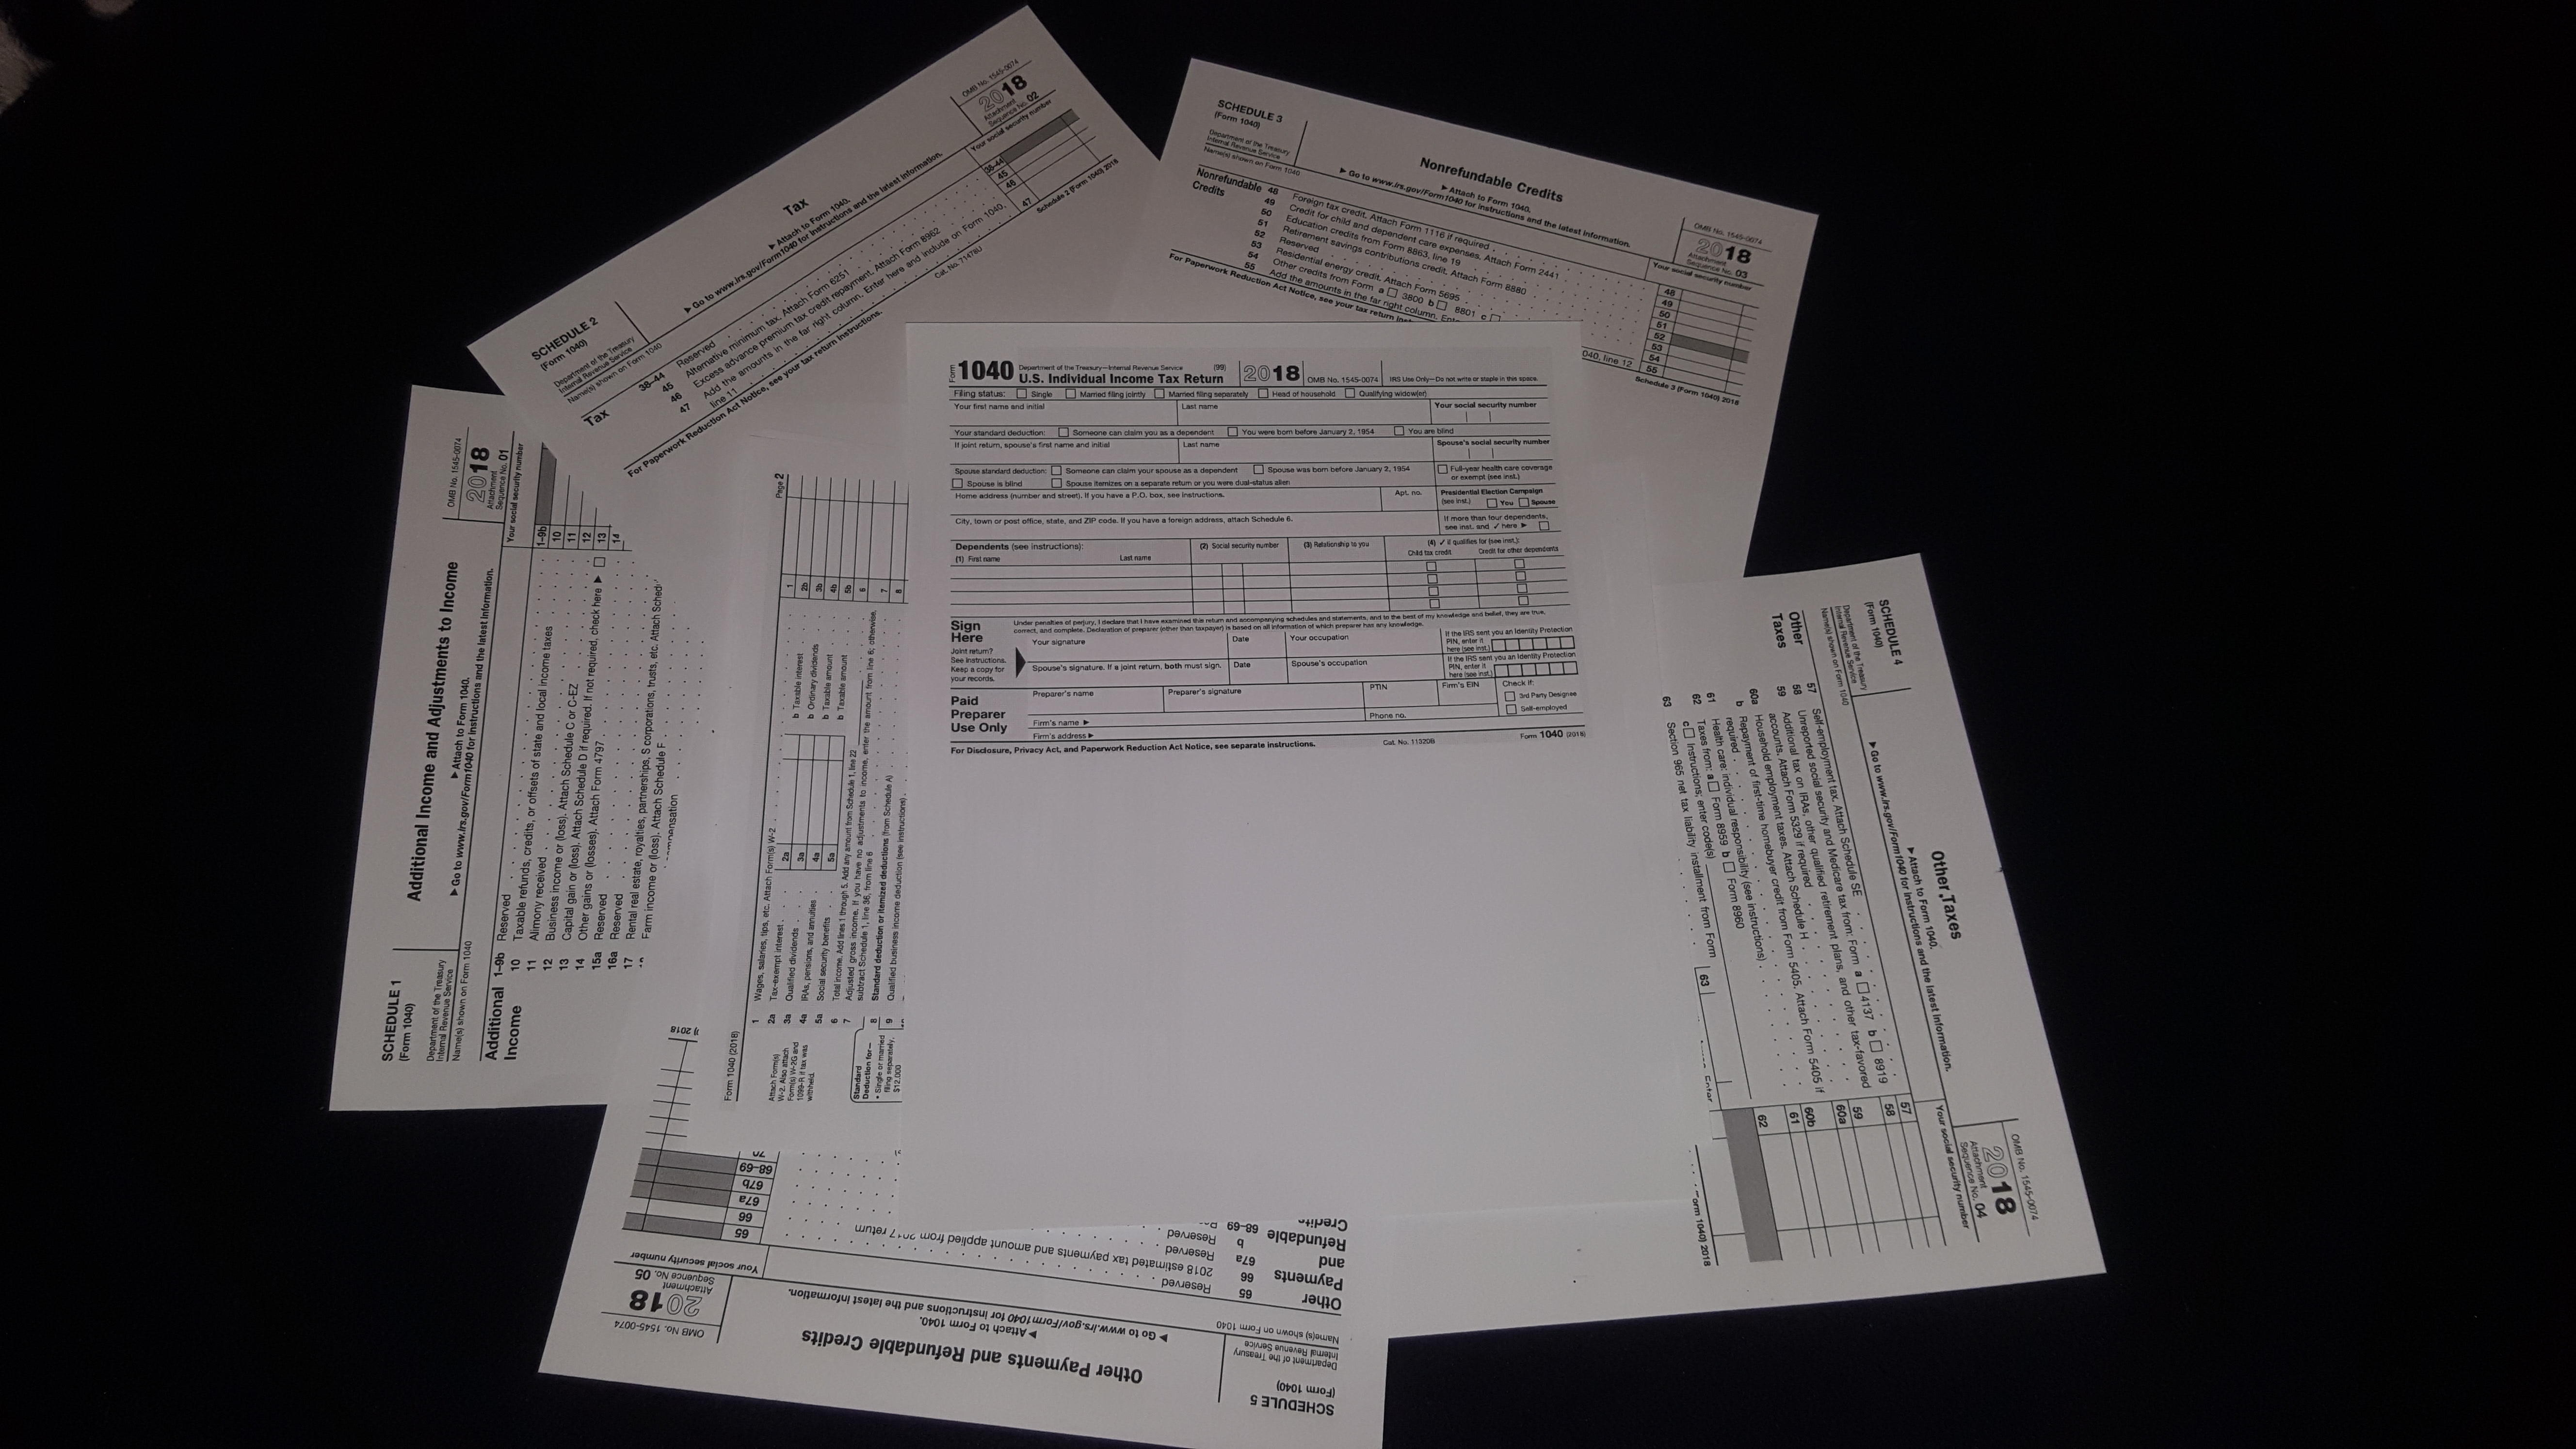 Professional Tax Services of Long Island LLC image 5